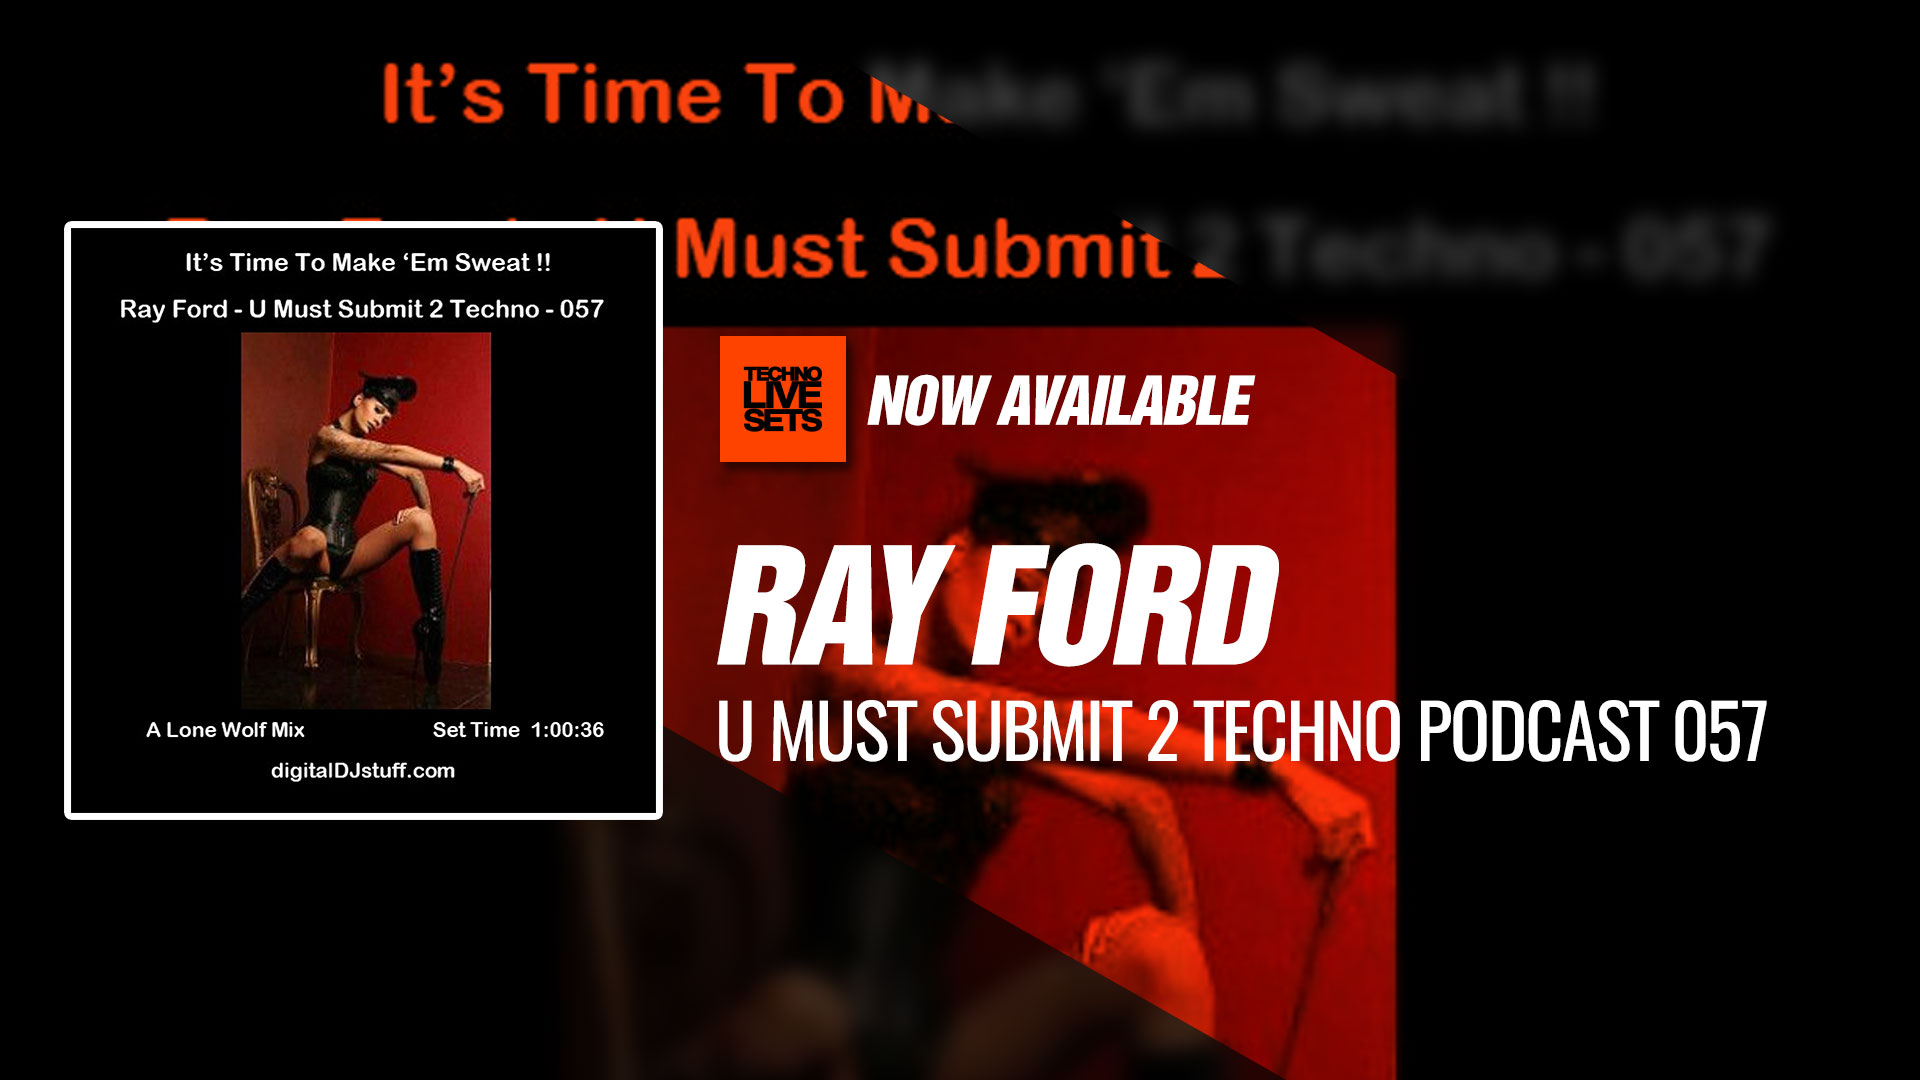 Ray Ford 2017 U Must Submit 2 Techno Podcast 057 07 12 2017